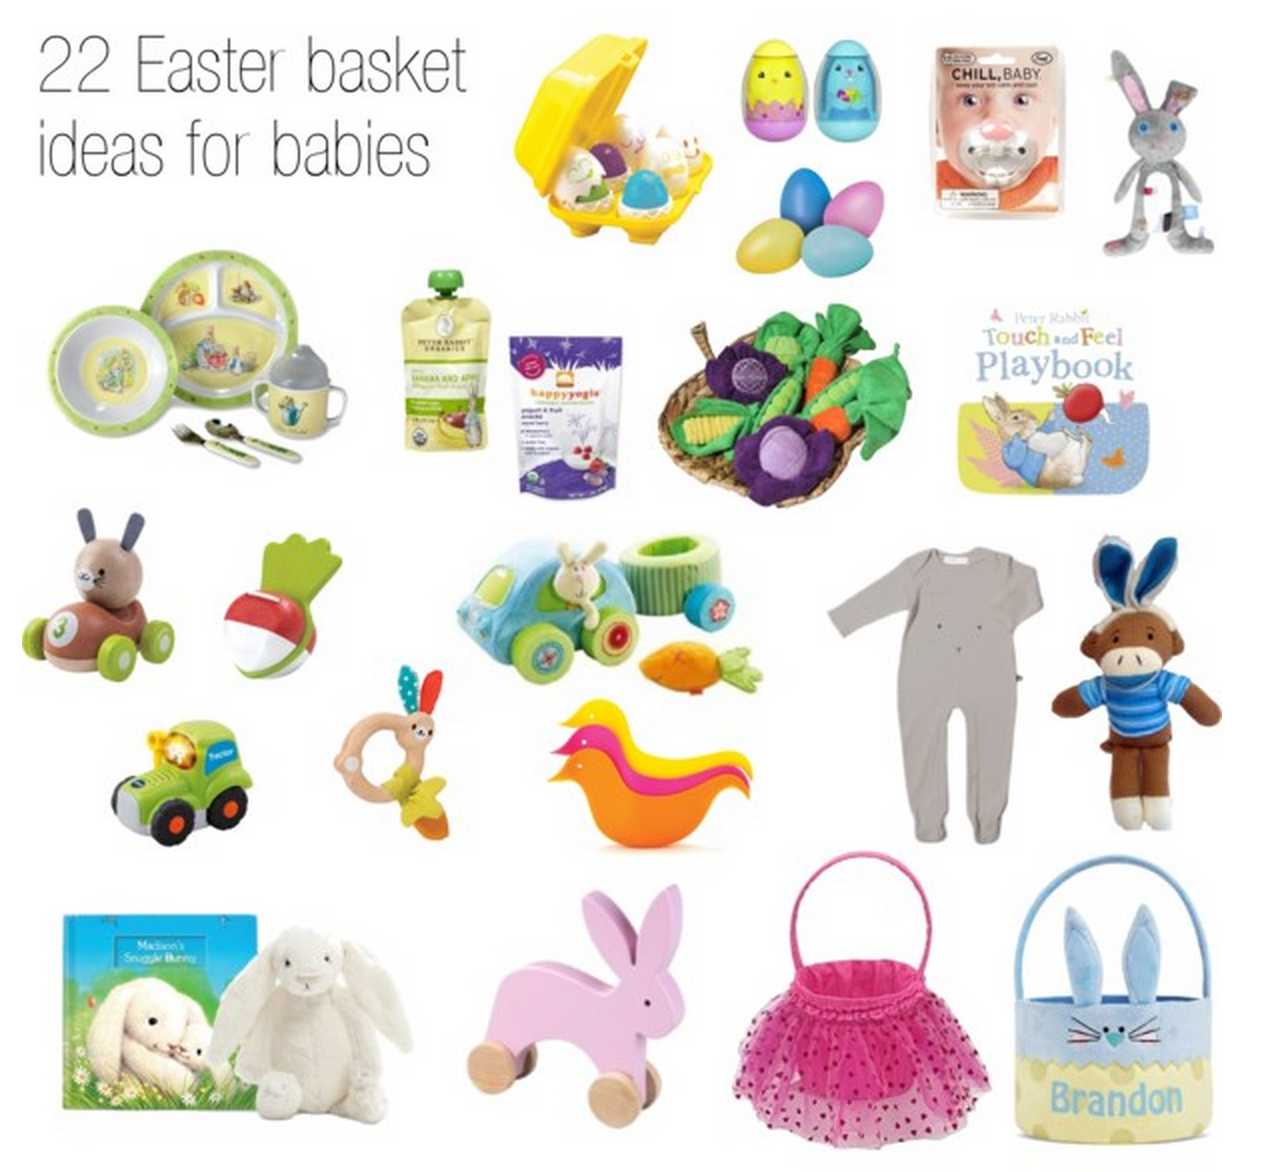 22 adorable easter basket ideas for babies easter gifts for baby negle Images